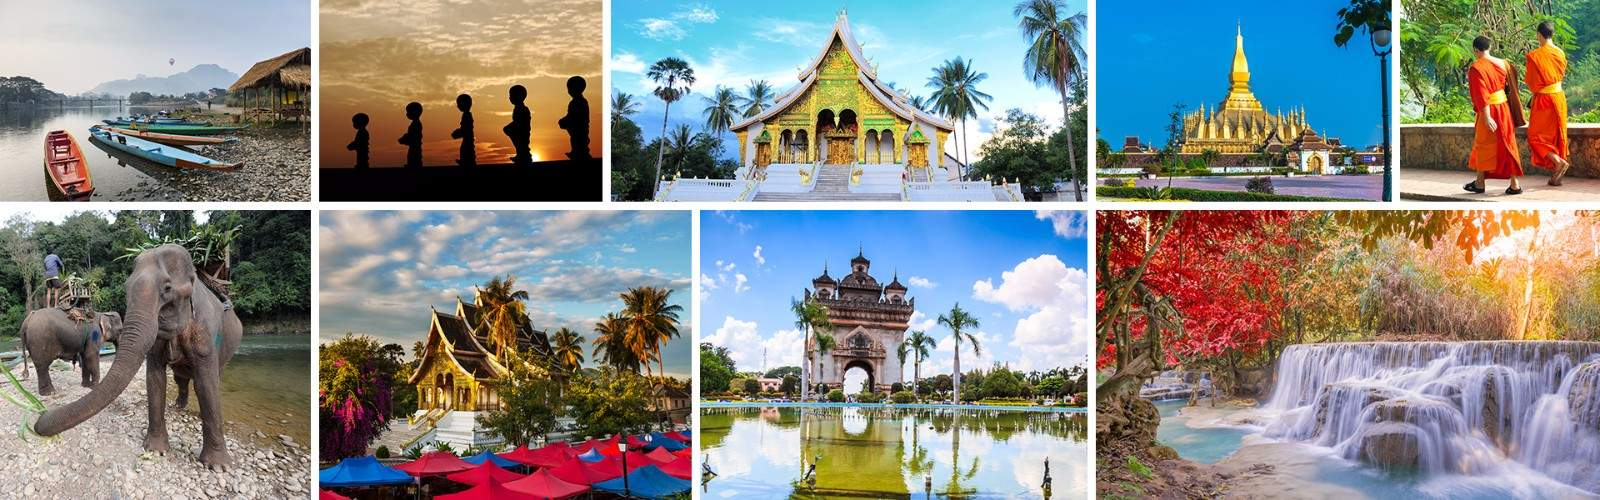 Wendy Wu Tours Laos Holidays